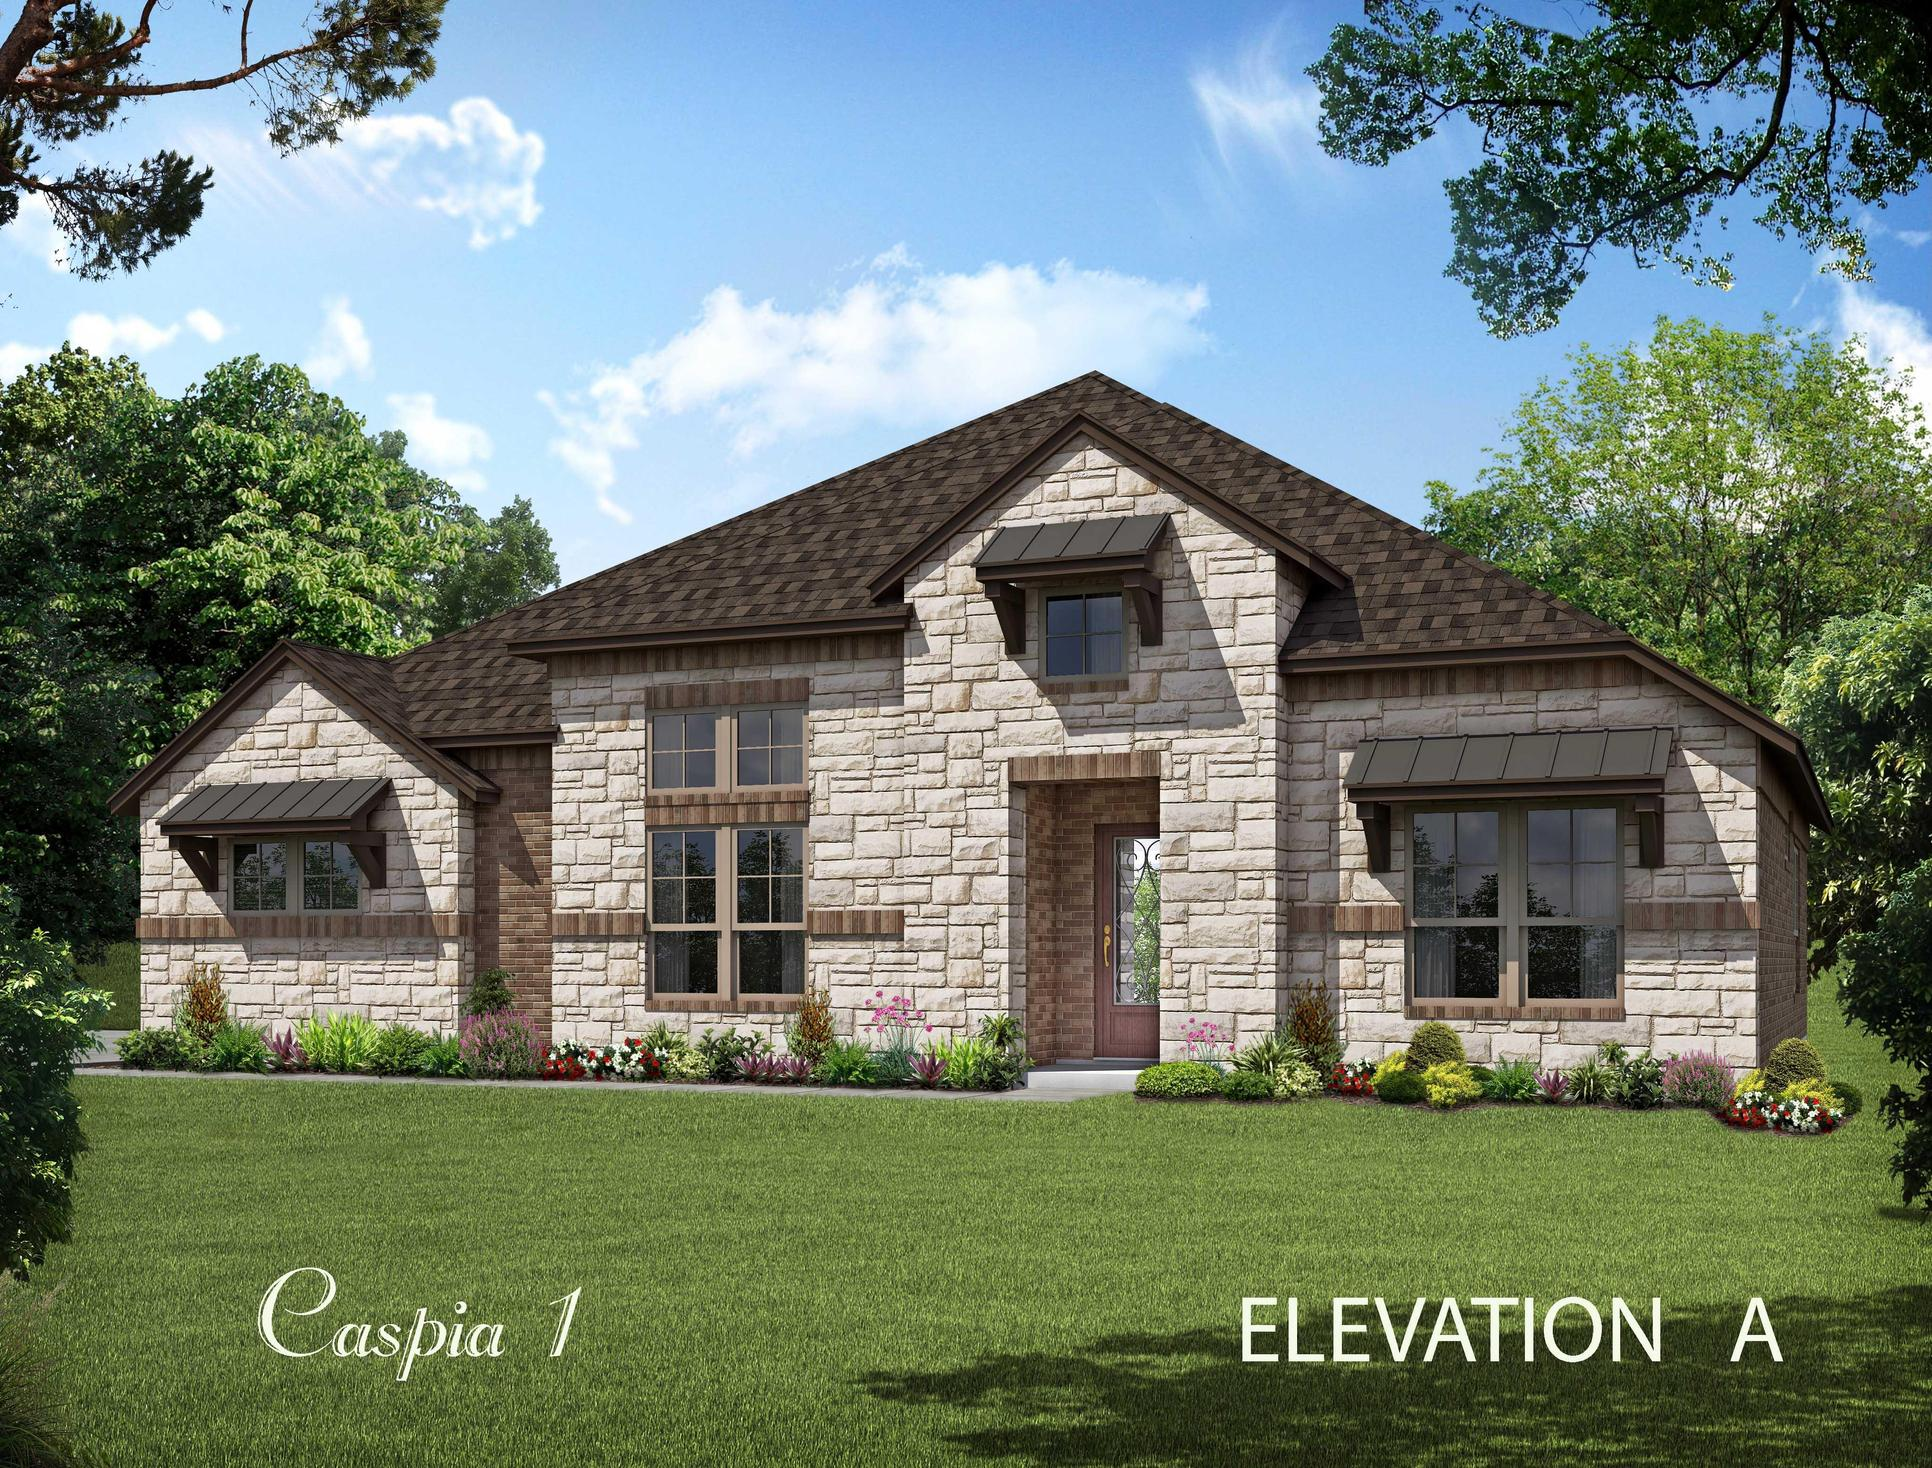 Caspia:Elevation A